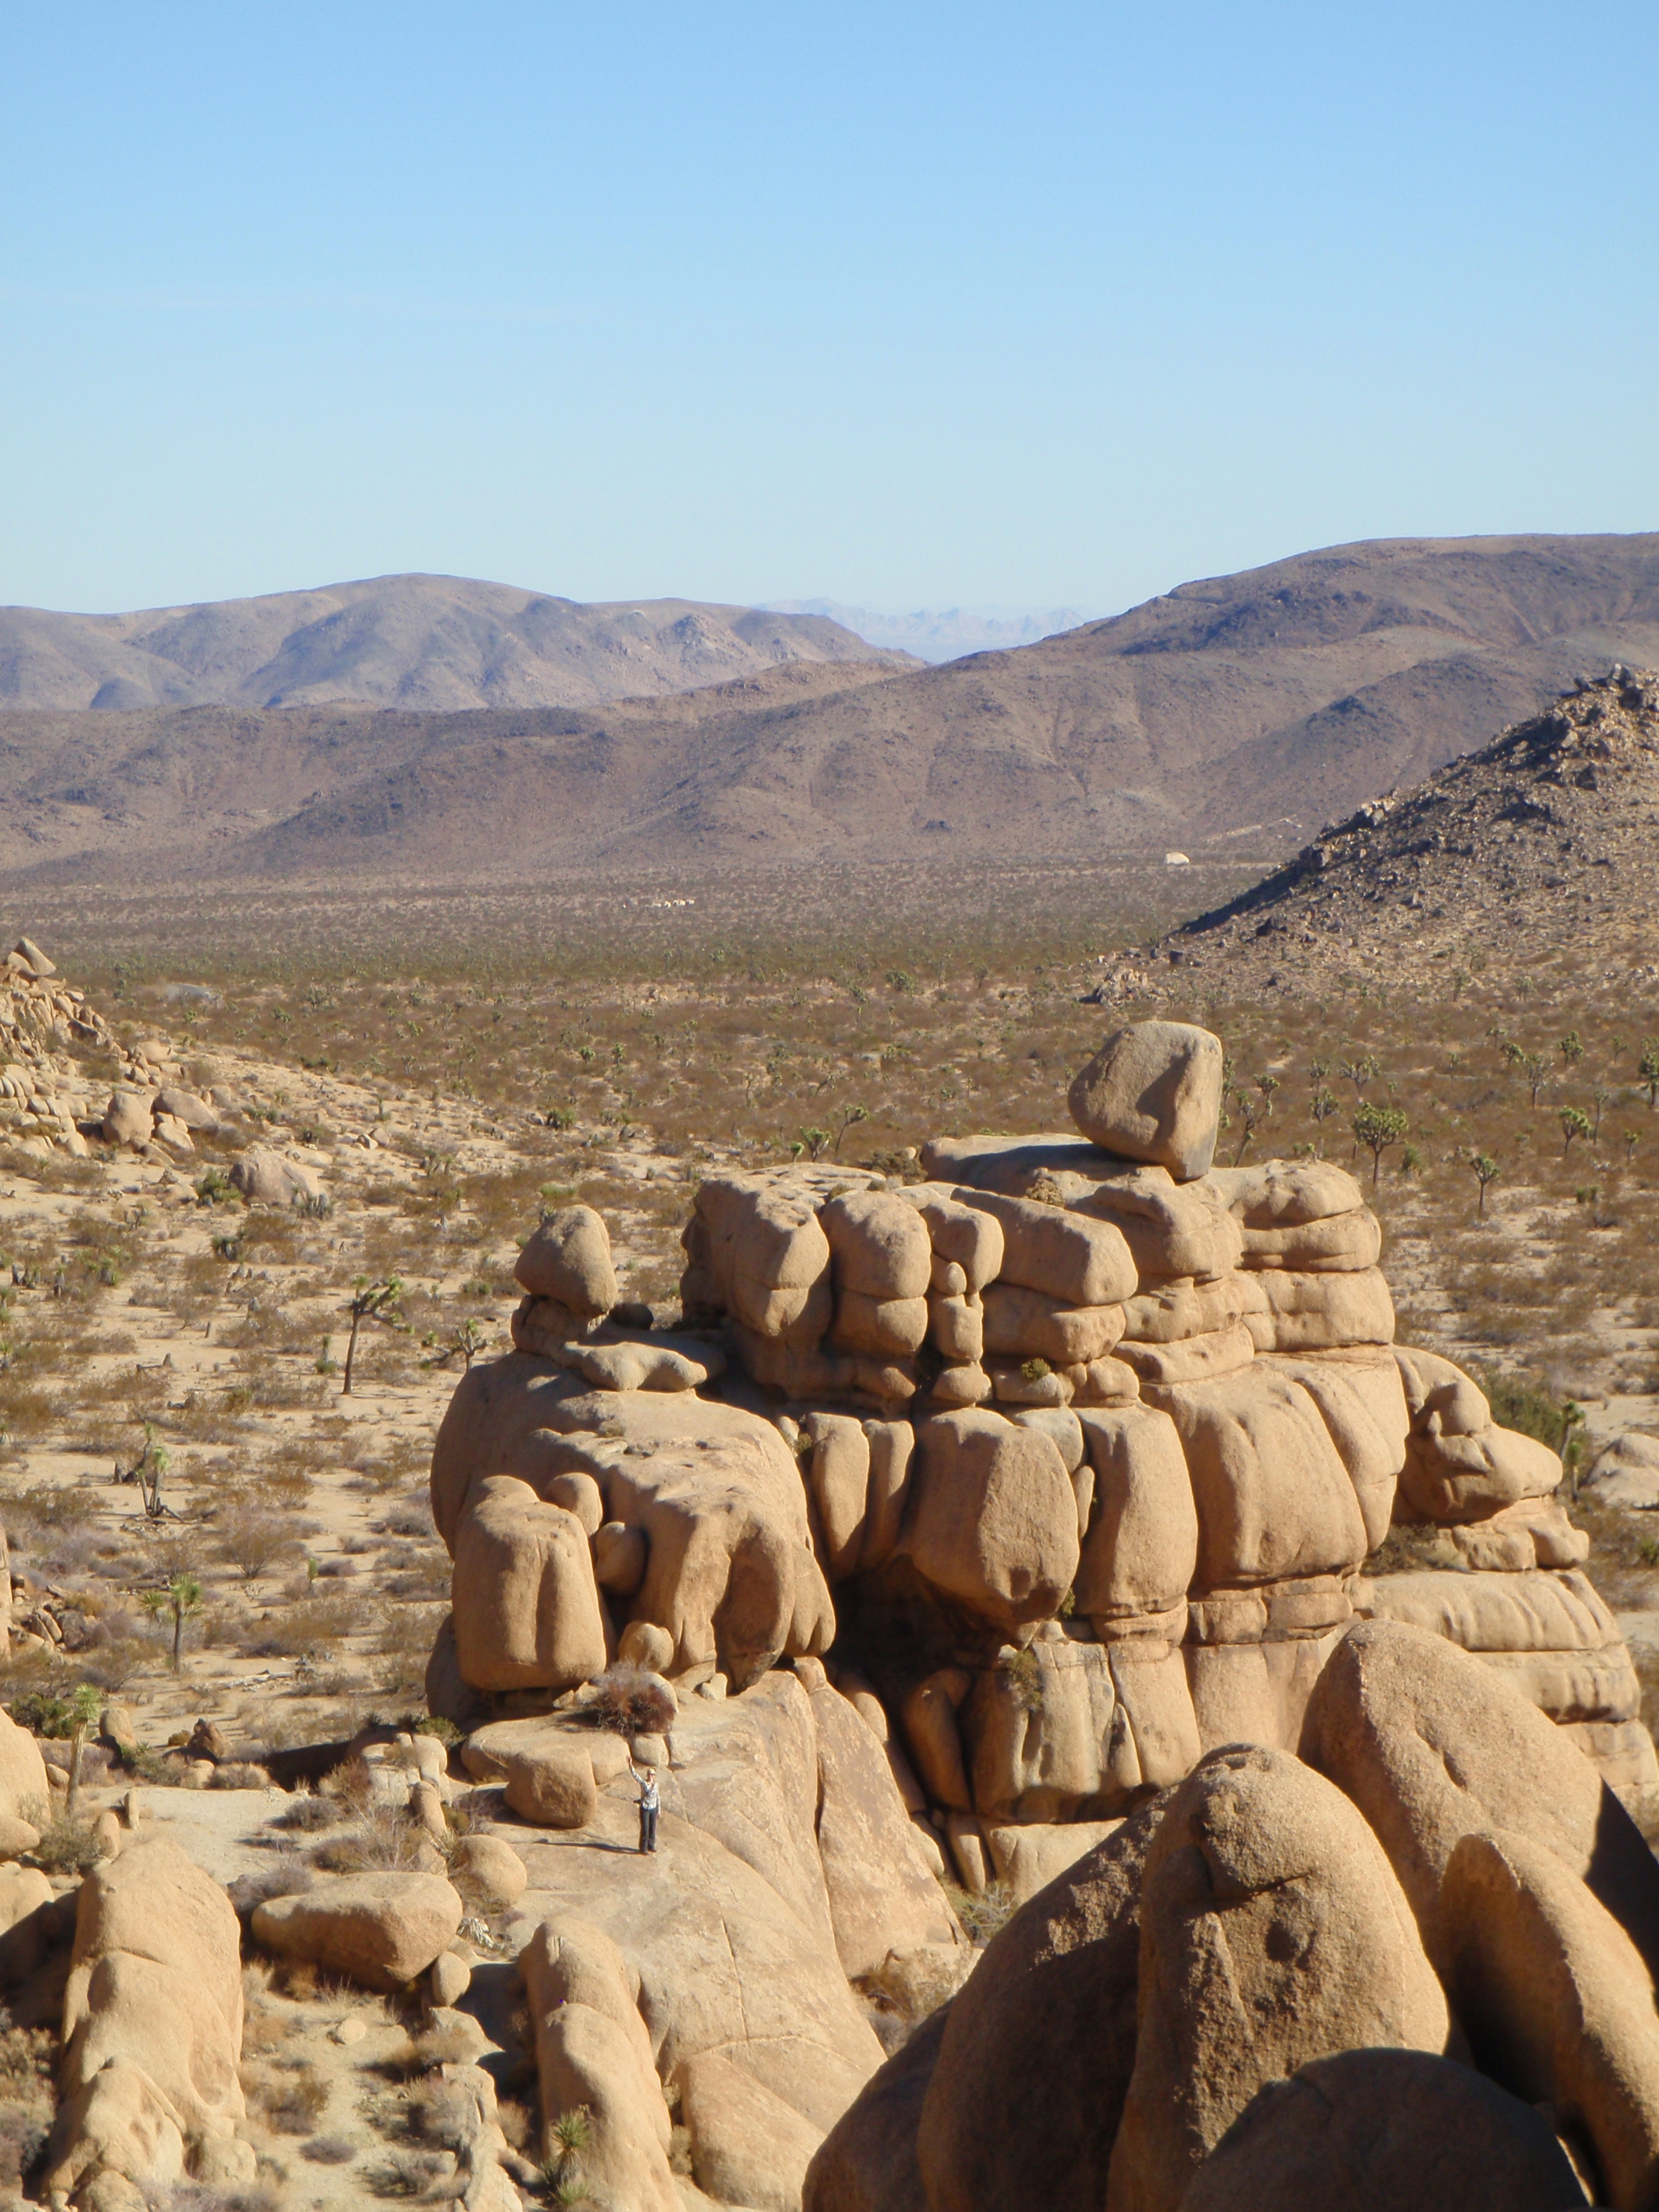 joshua tree in december, Joshua Tree National Park scramble